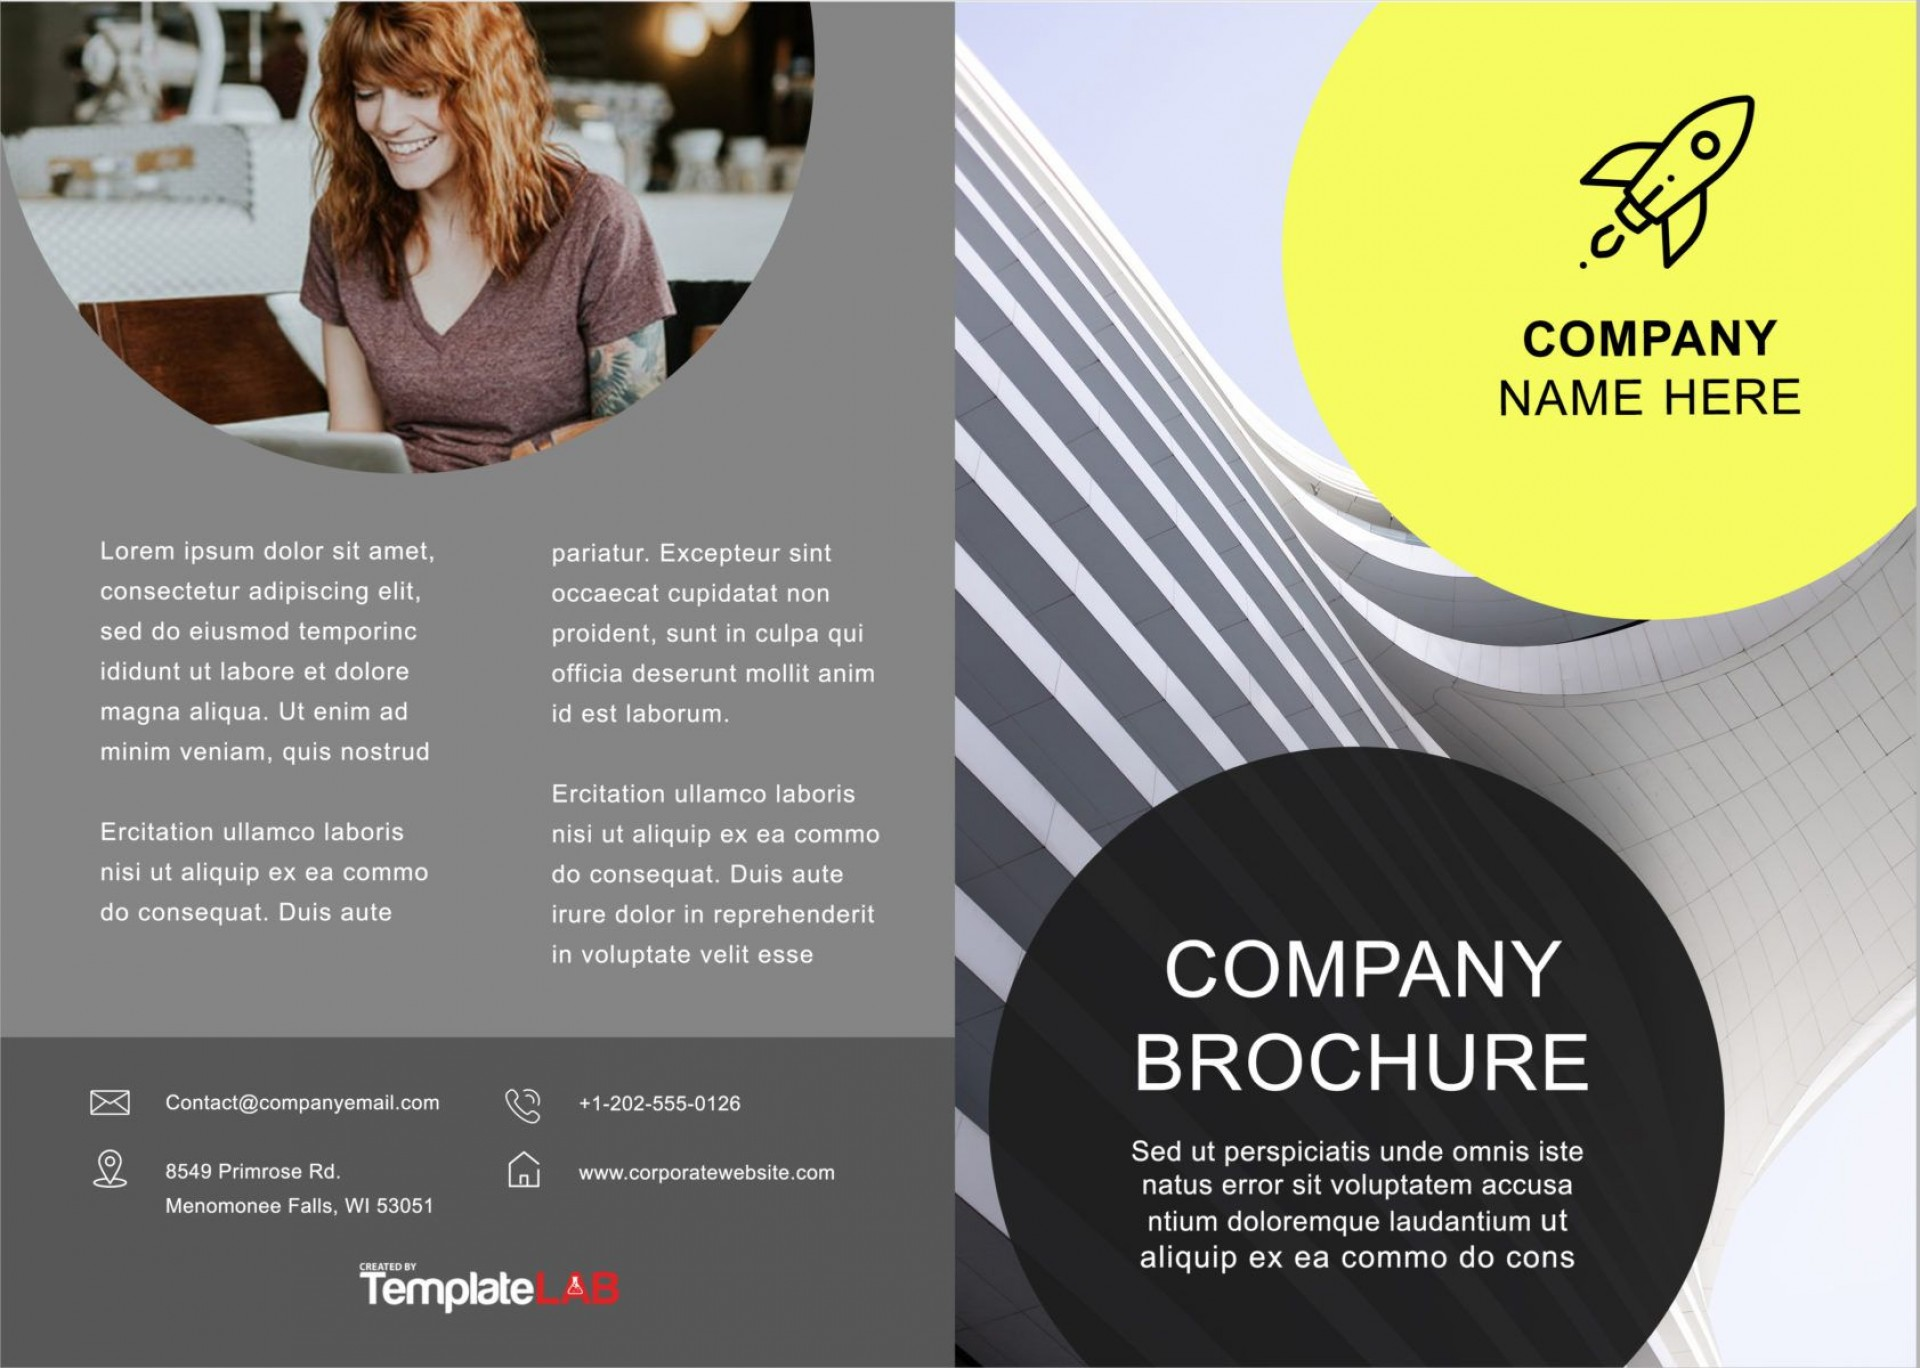 003 Awesome Brochure Template For Word High Def  Online Layout Tri Fold Mac1920